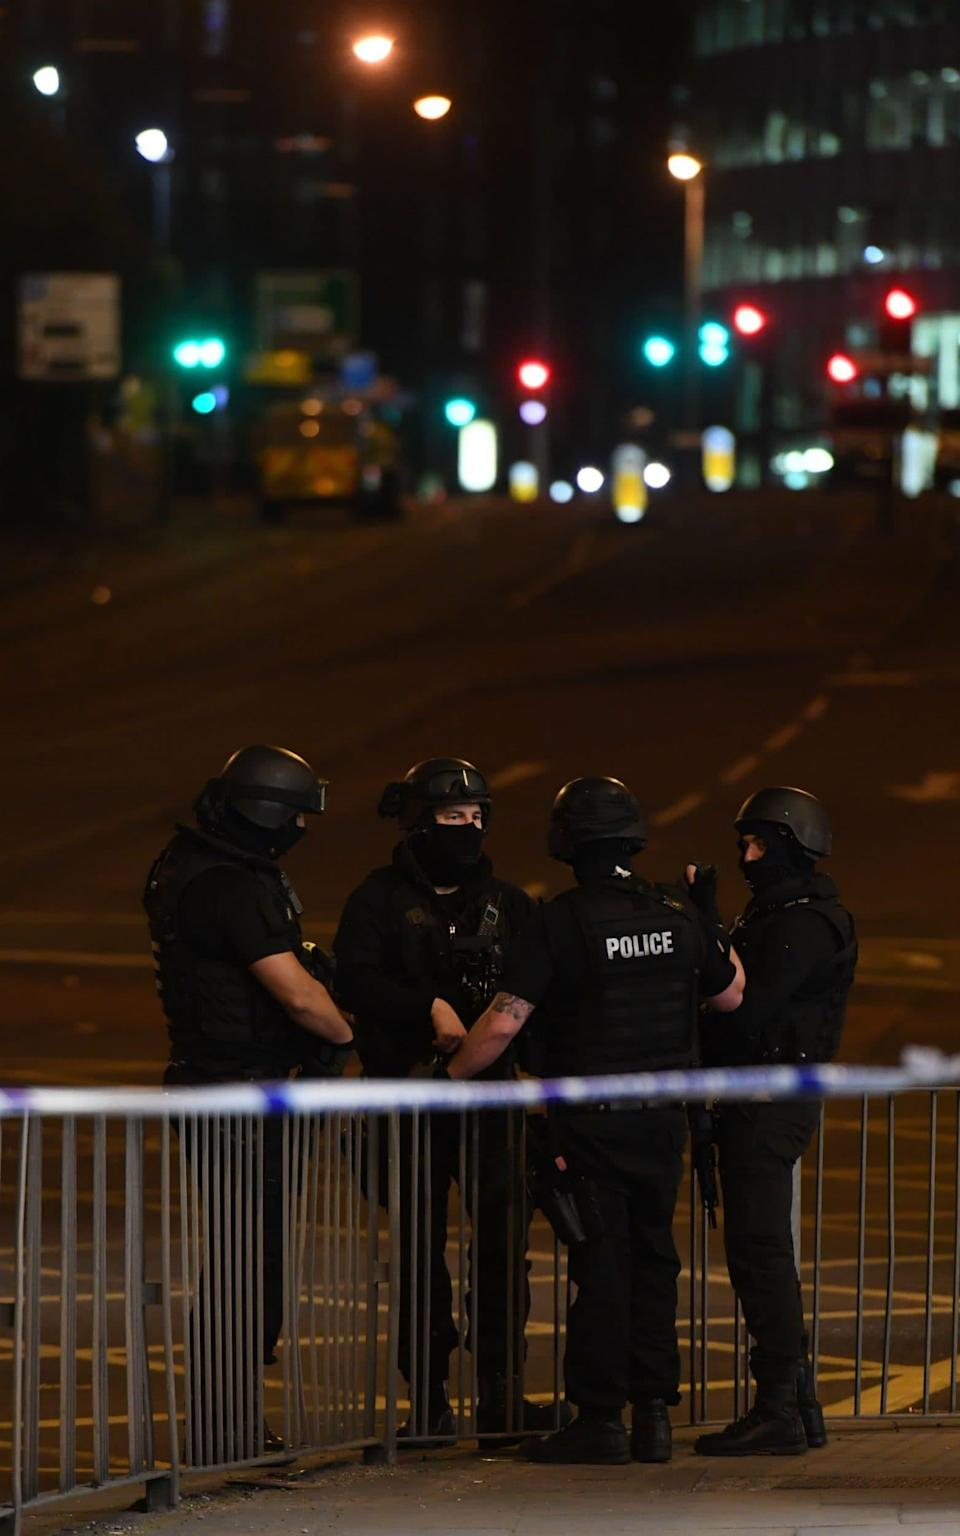 Armed police stand guard at the scene of the suspected terrorist attack - Credit: AFP